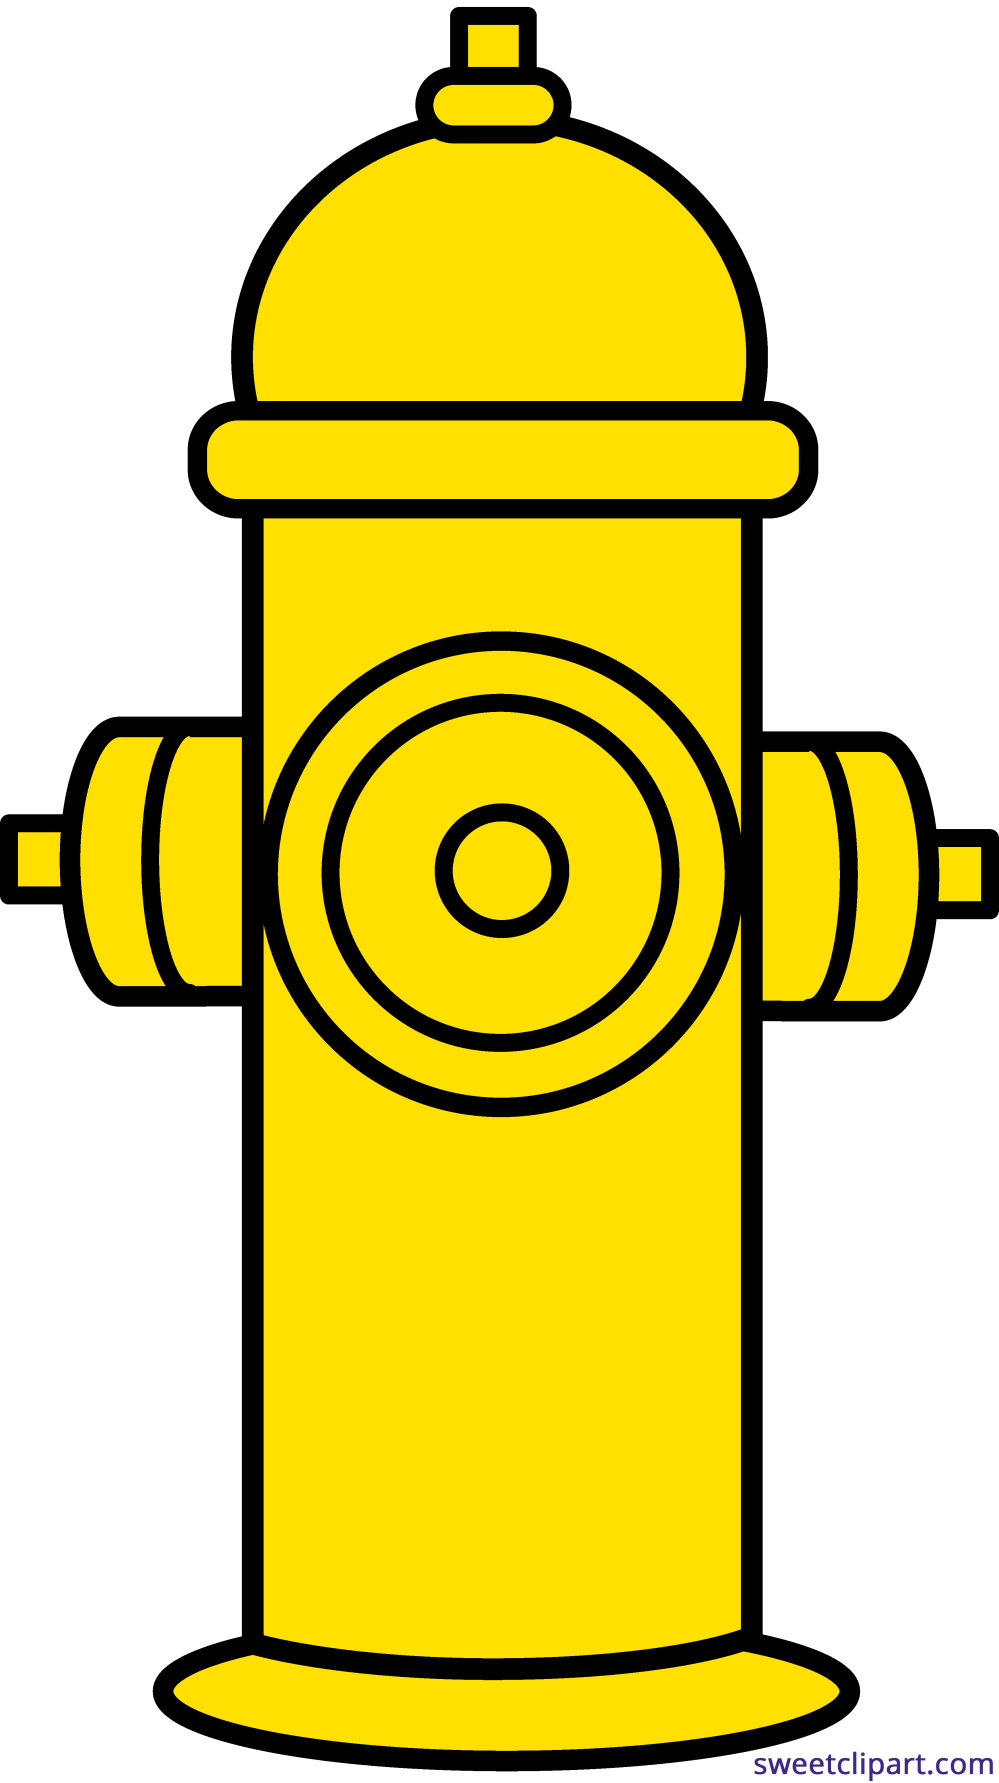 medium resolution of fire hydrant yellow clipart